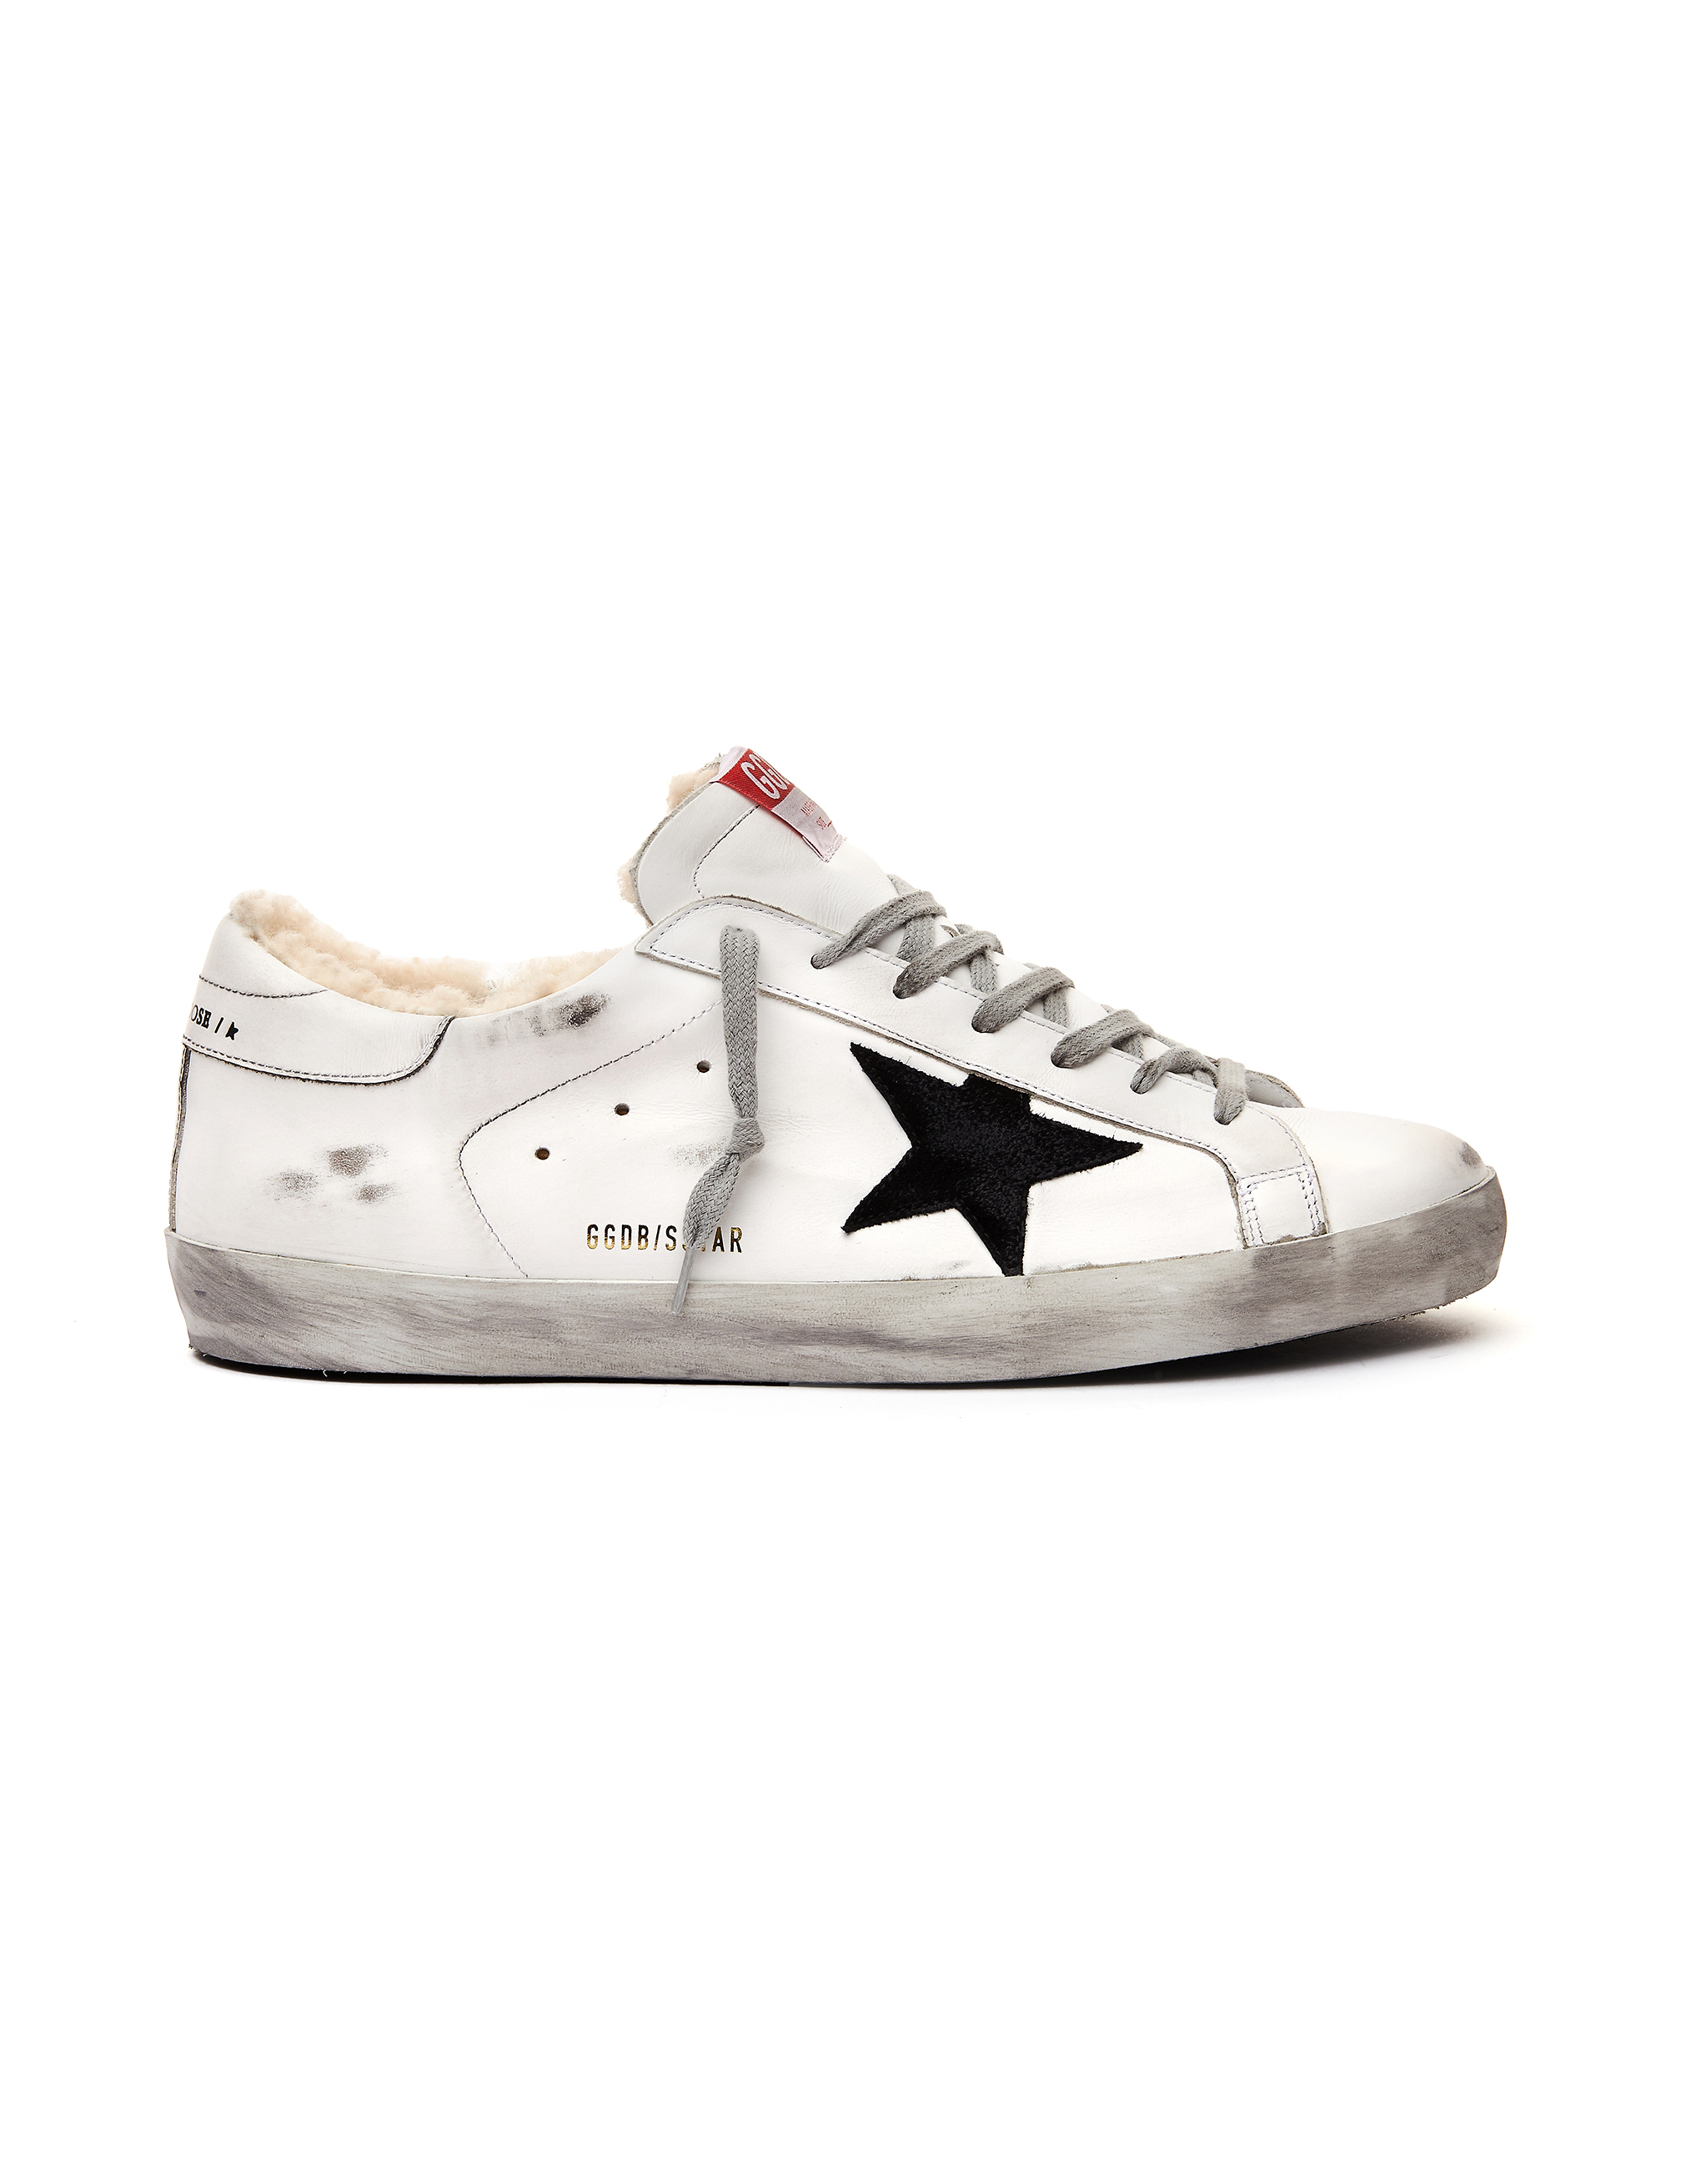 Golden Goose White Leather Fur Superstar Sneakers